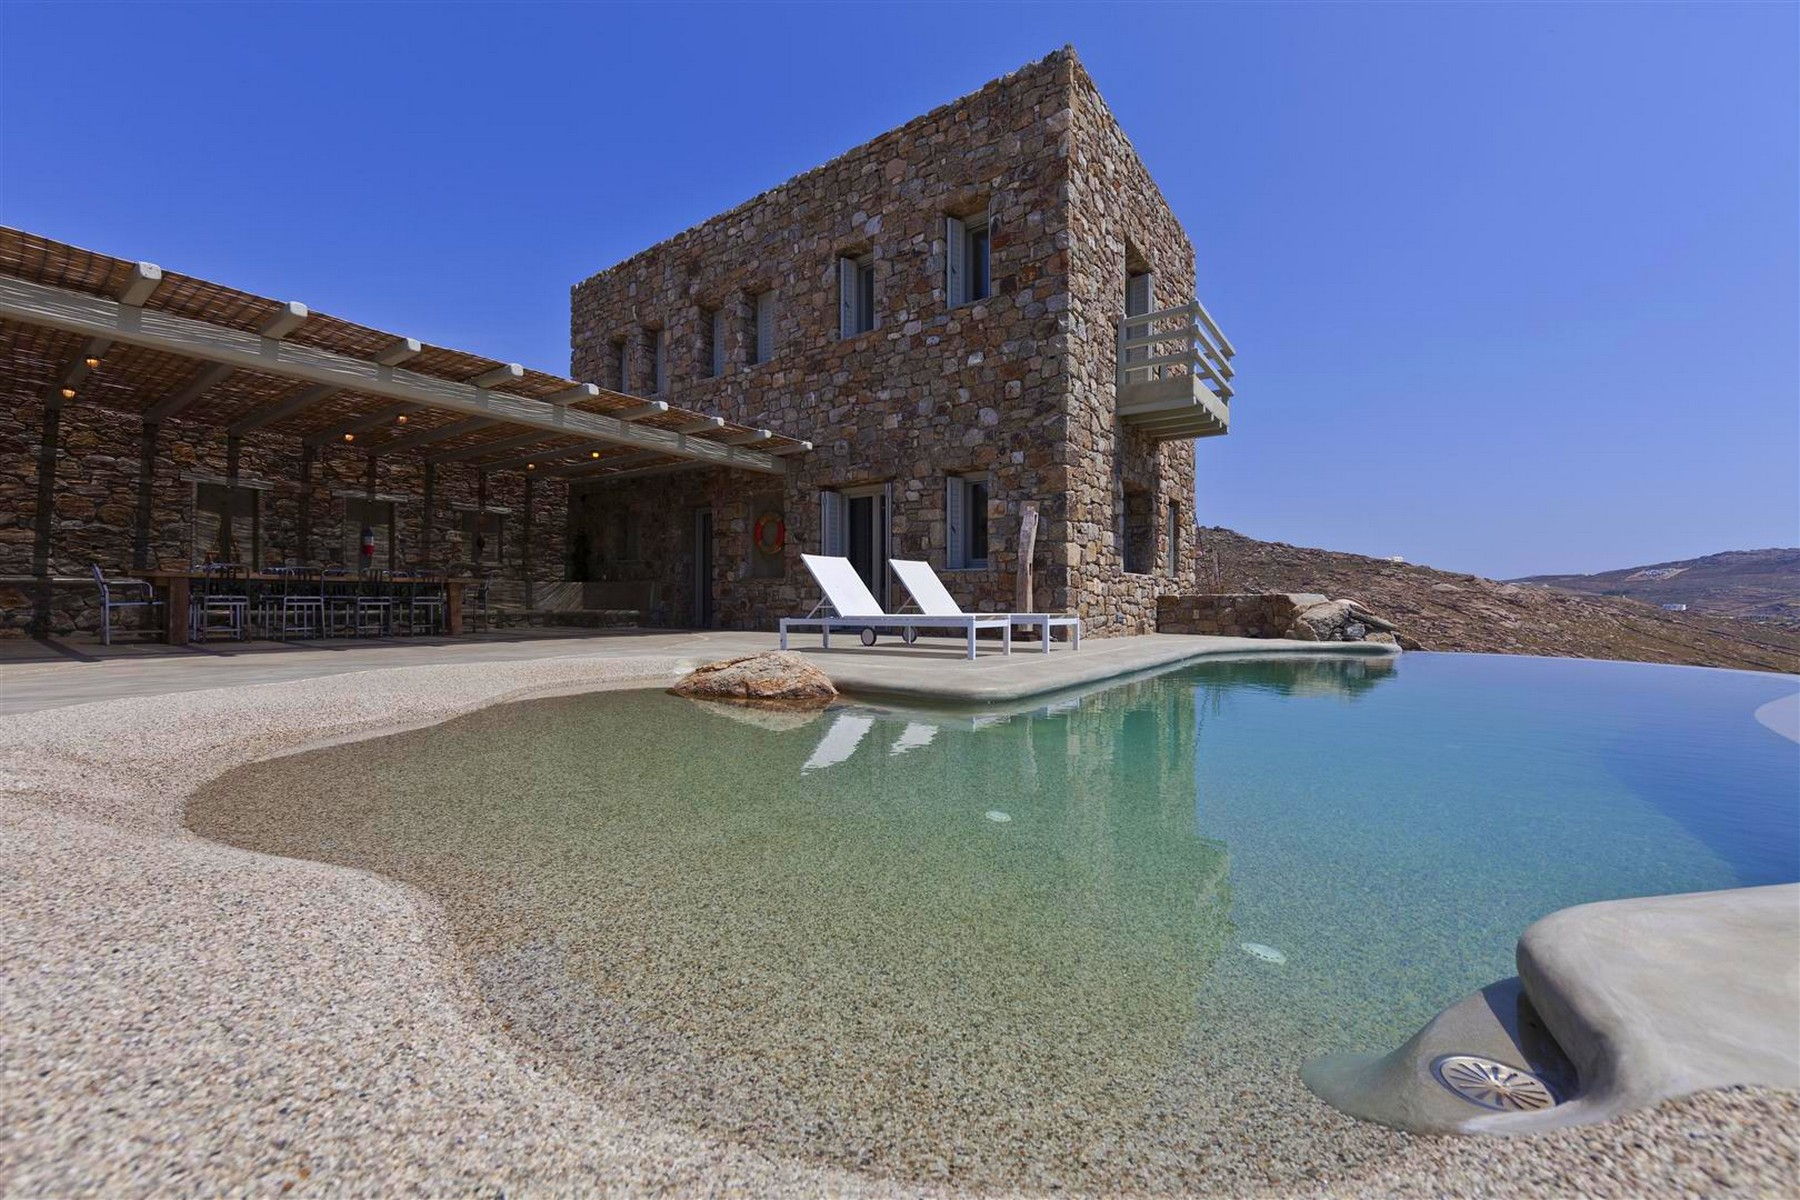 Single Family Home for Sale at Villa Corinna Mykonos, Cyclades, Aegean Mykonos, Southern Aegean 84600 Greece